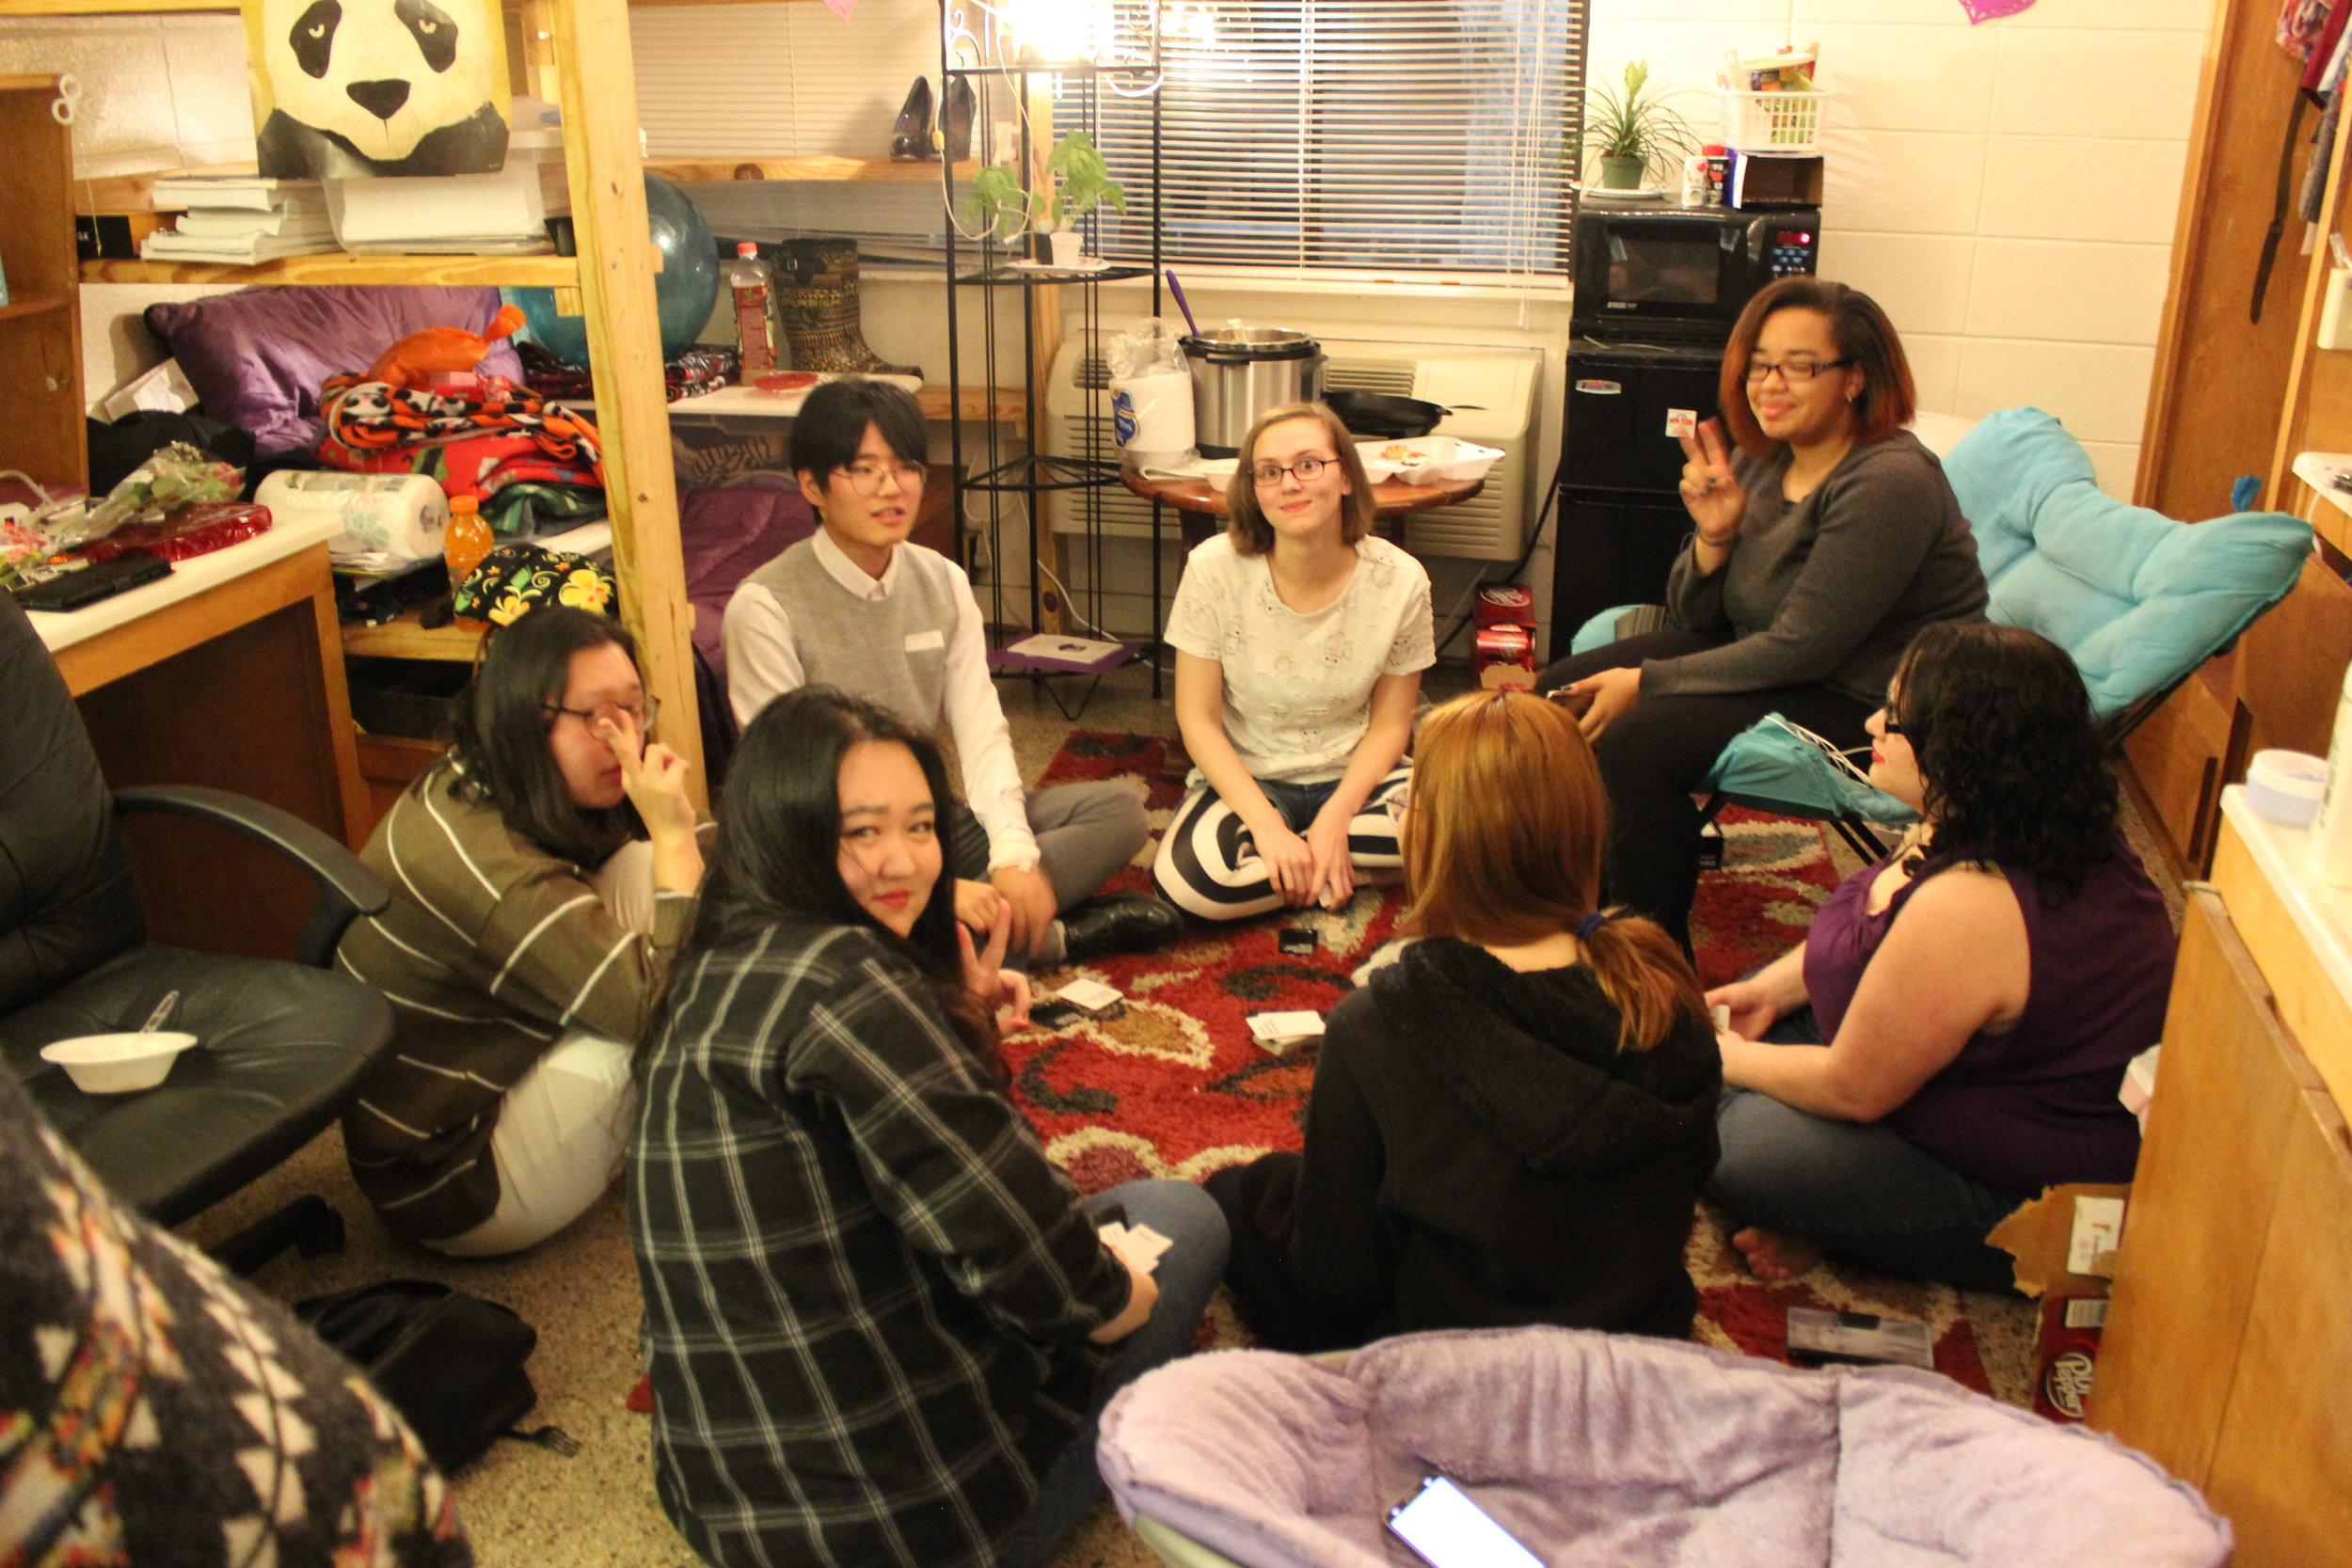 Nisa Navarro, an interdisciplinary English and communication major, Hannah Bate, a linguistics and English major, Ashia Davenport, a criminal justice and linguistics major and their guests Lily, Shawn, and Nancy enjoy the open dorms with a card game.